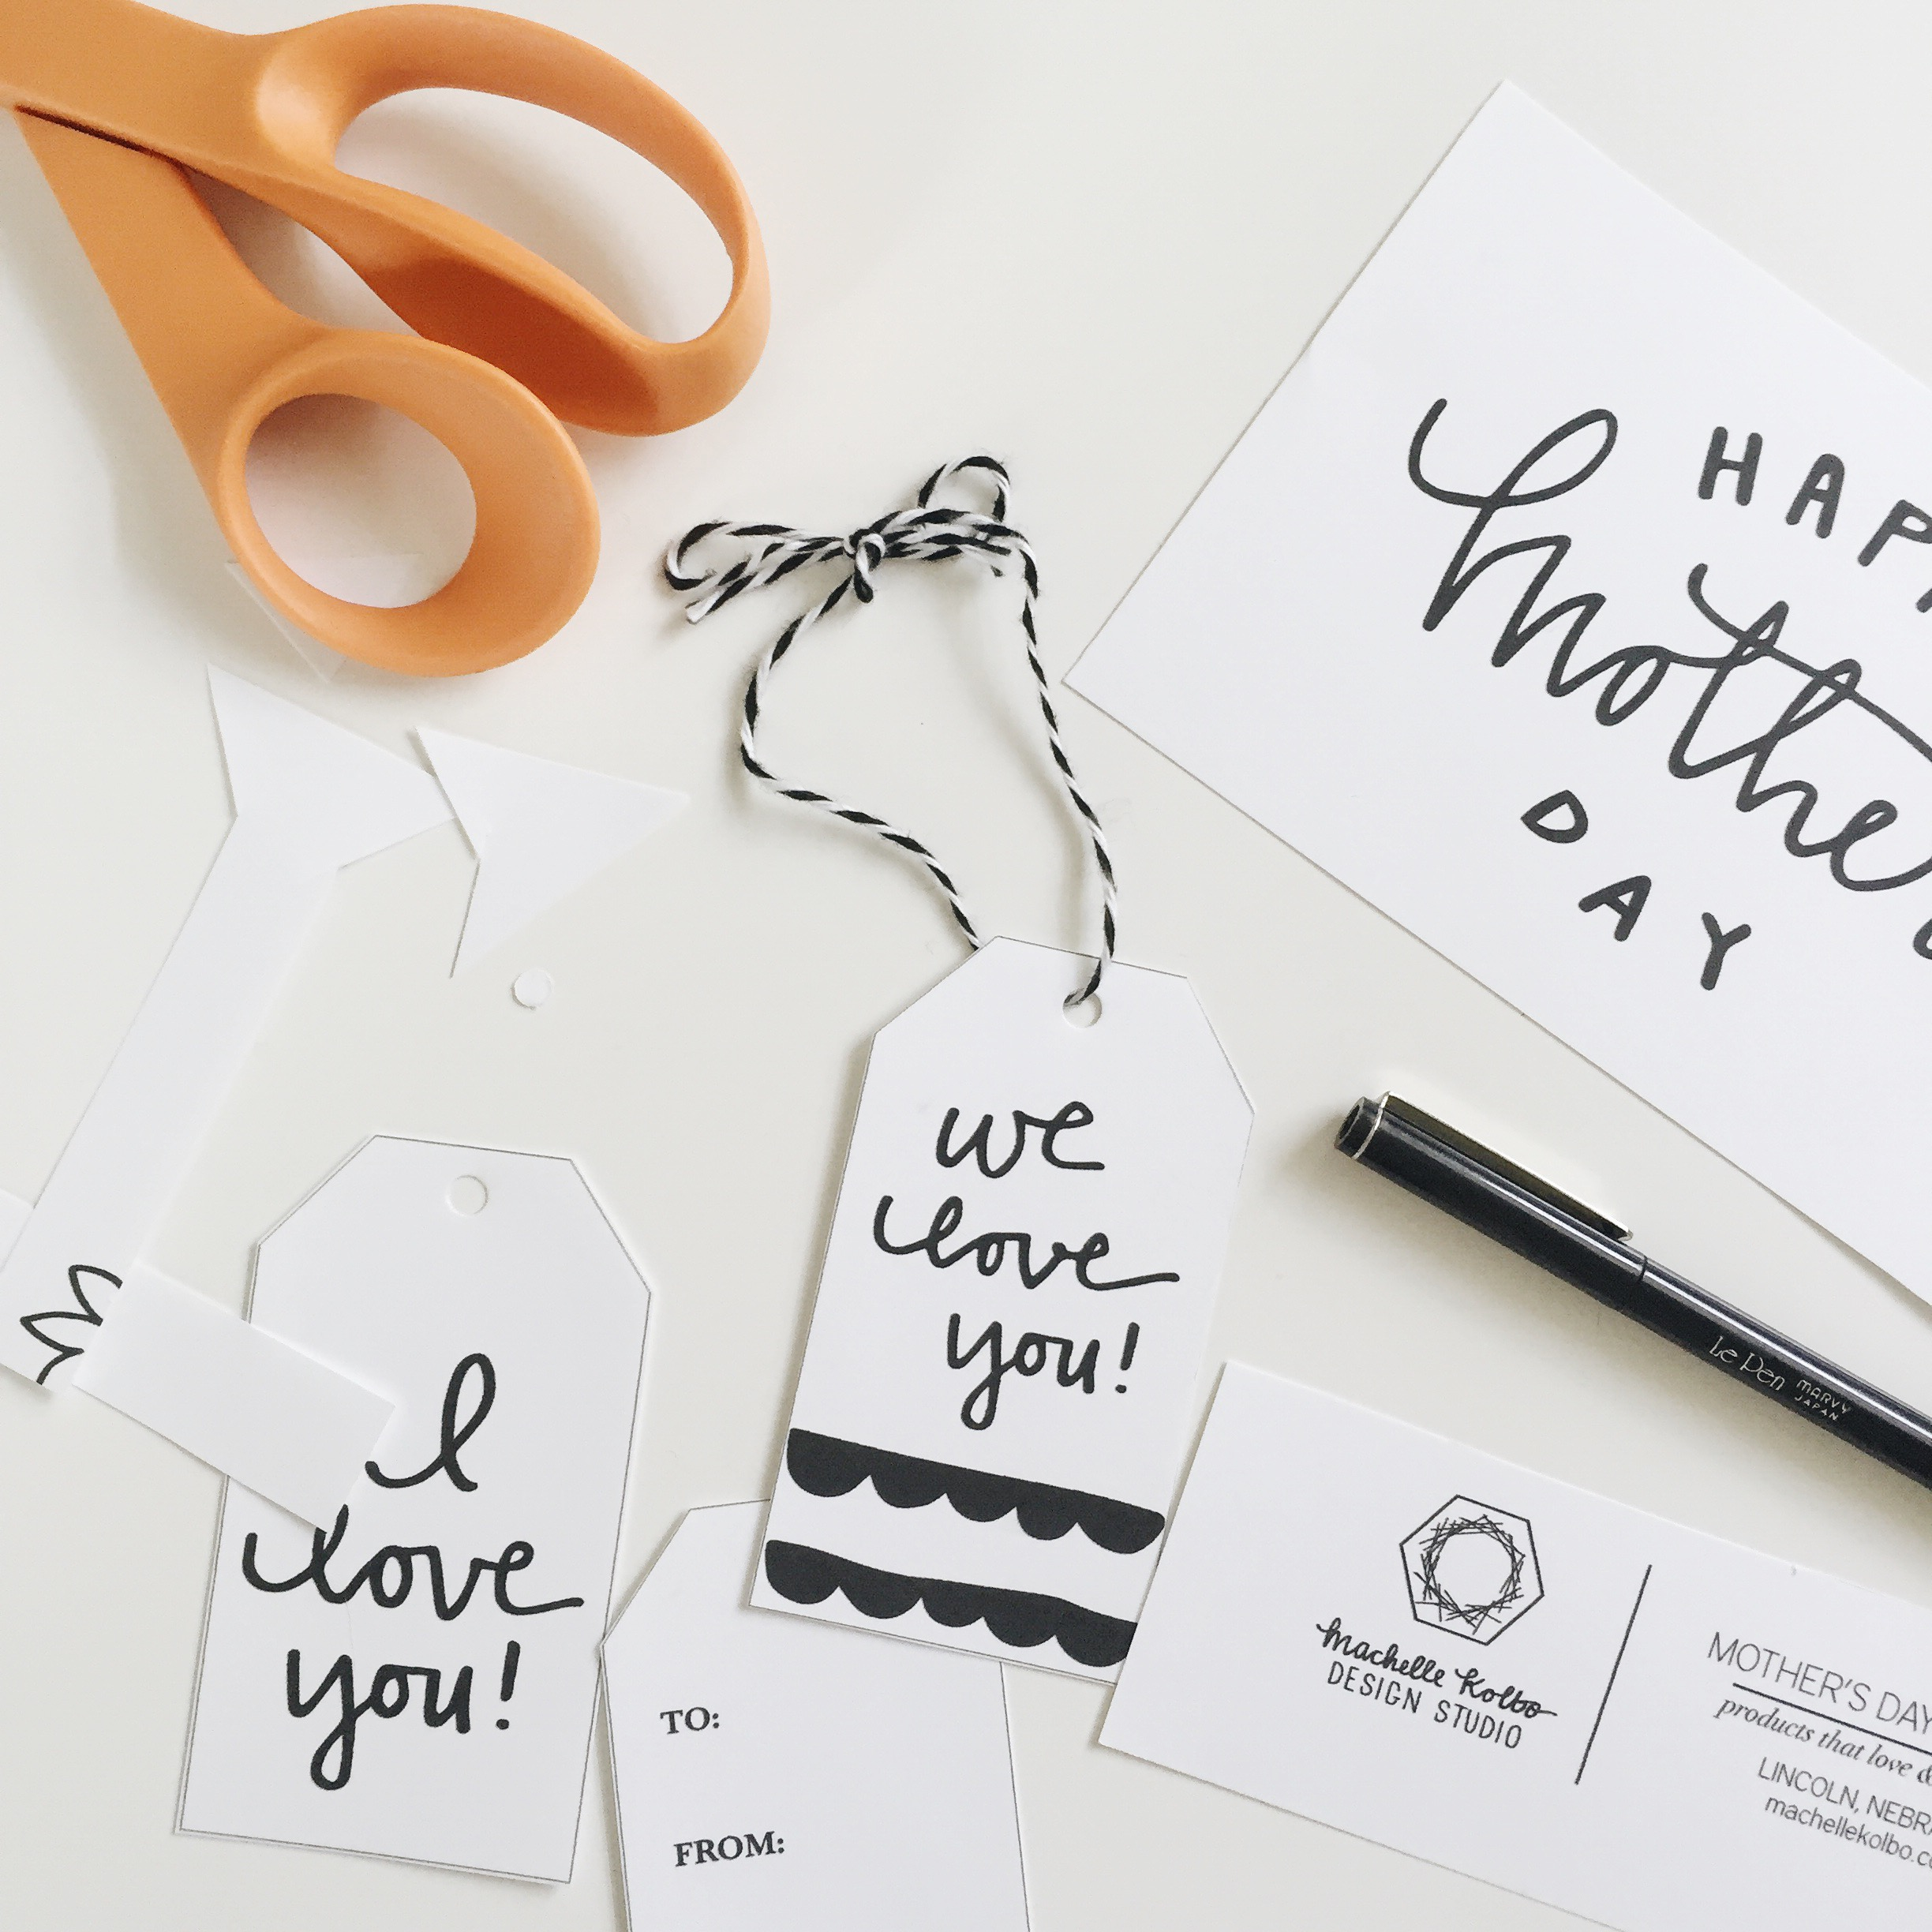 Grab your scissors and string to make these easy gift tags // Mother's Day Freebie // Machelle Kolbo Design Studio.